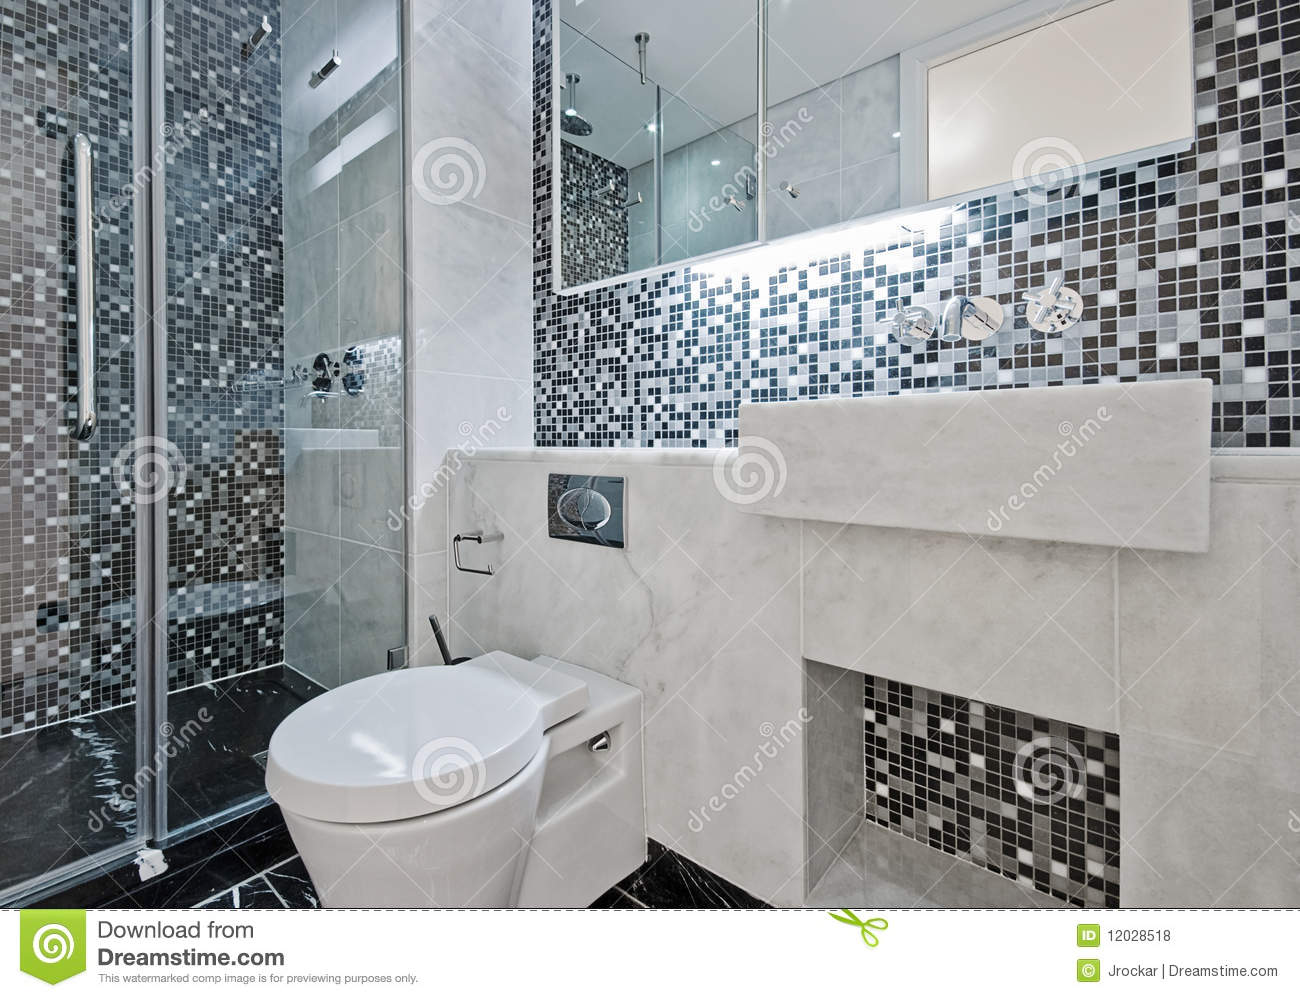 Bathroom with mosaic tiles stock photo Image of mixer  12028518